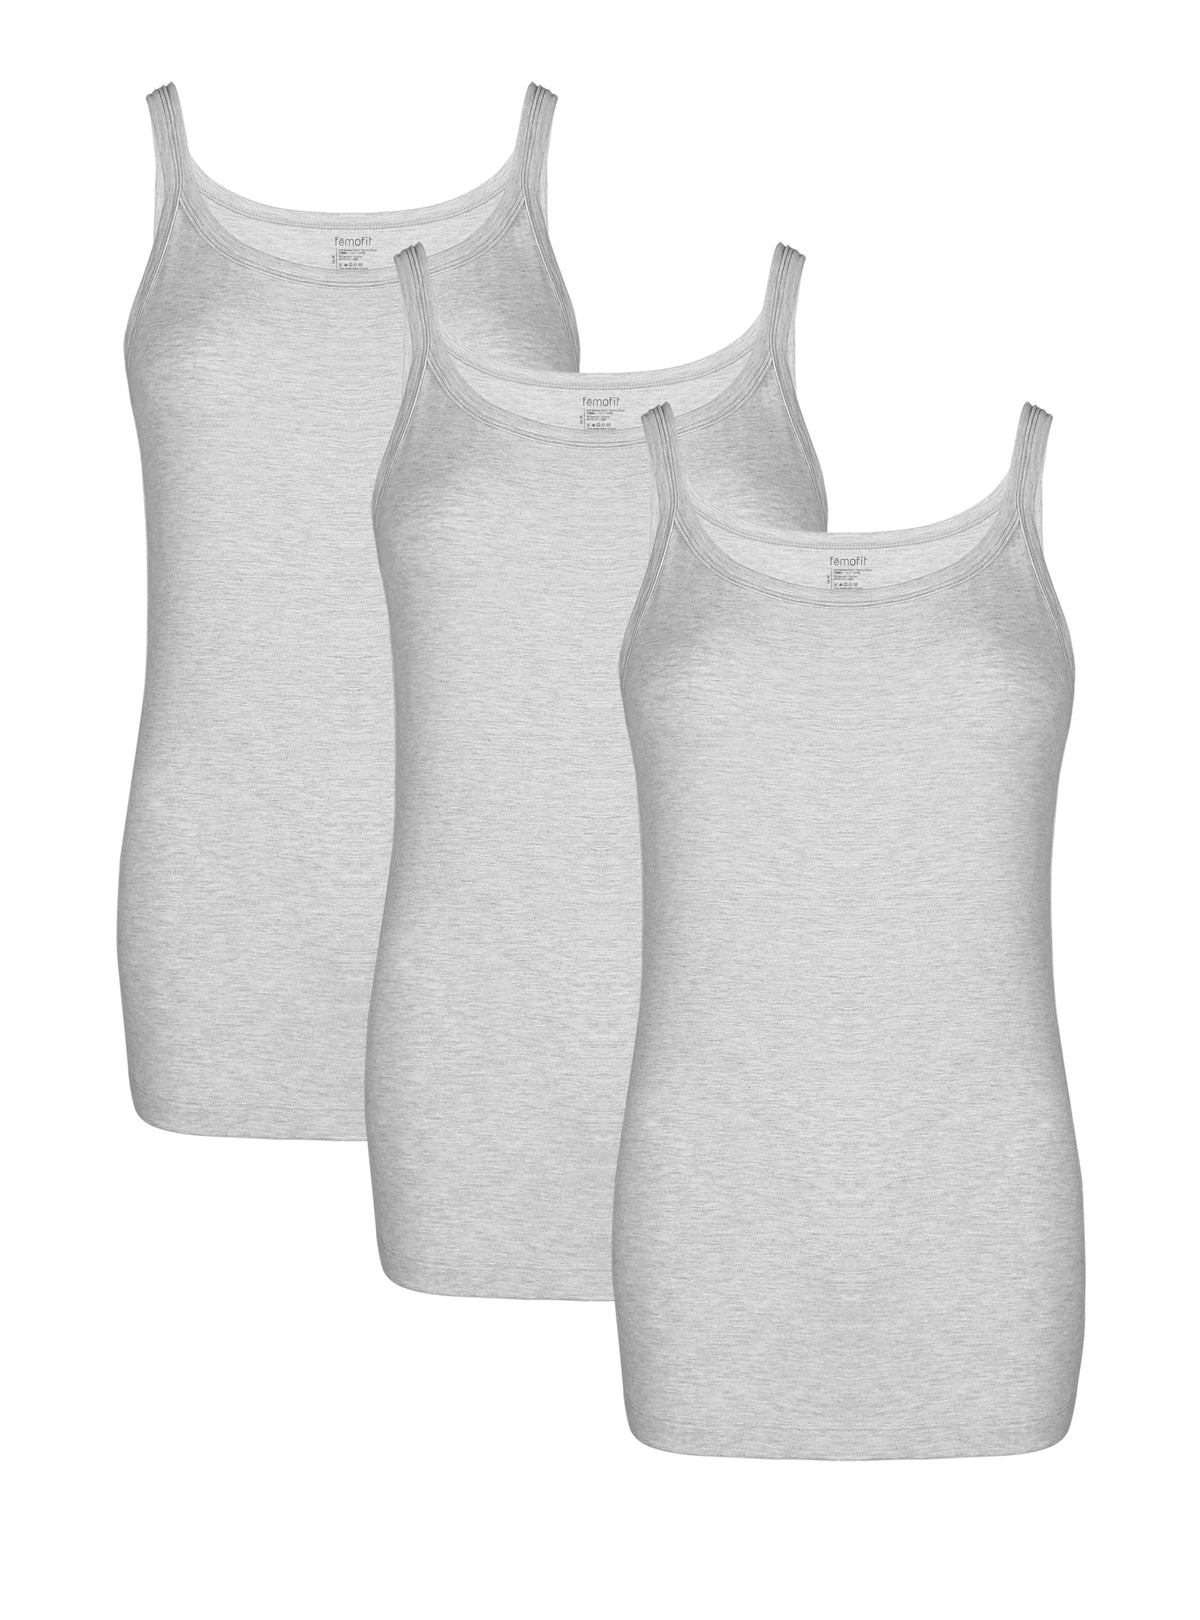 Femofit Women's Tank Top Bamboo Rayon Camisole Long Length Layering Tank Tops Camis 3 Pack